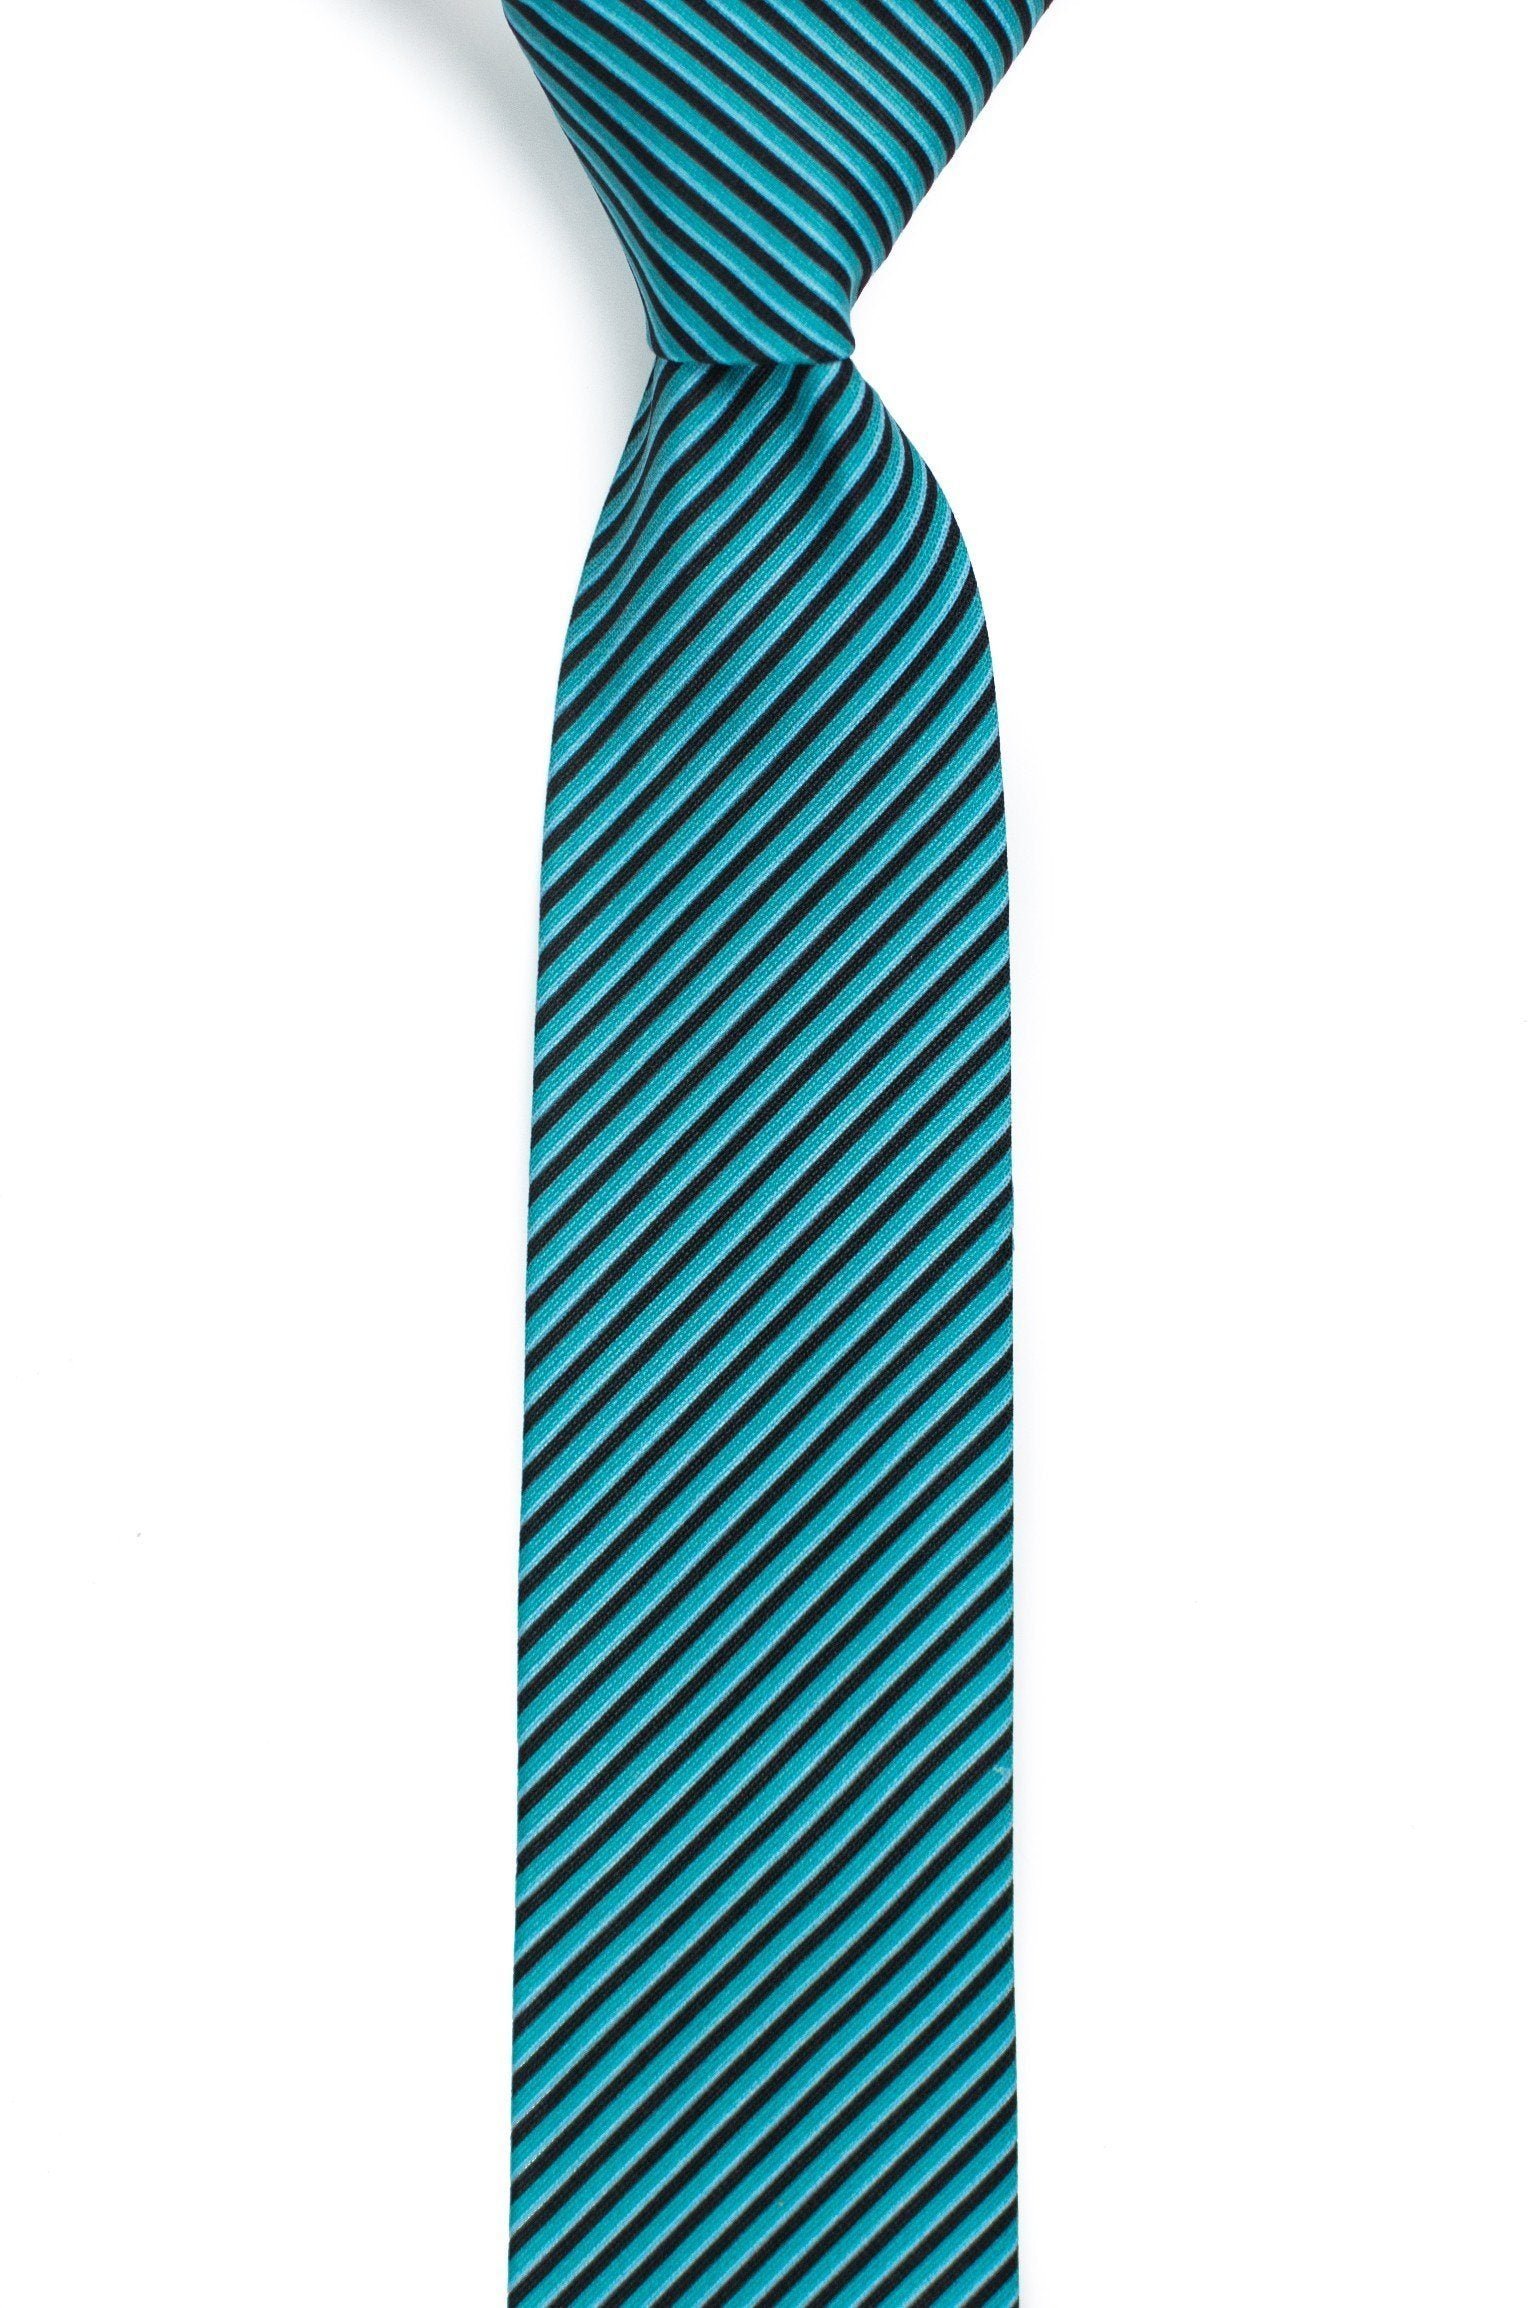 Bennett 2.0 | Boy's - Tough Tie